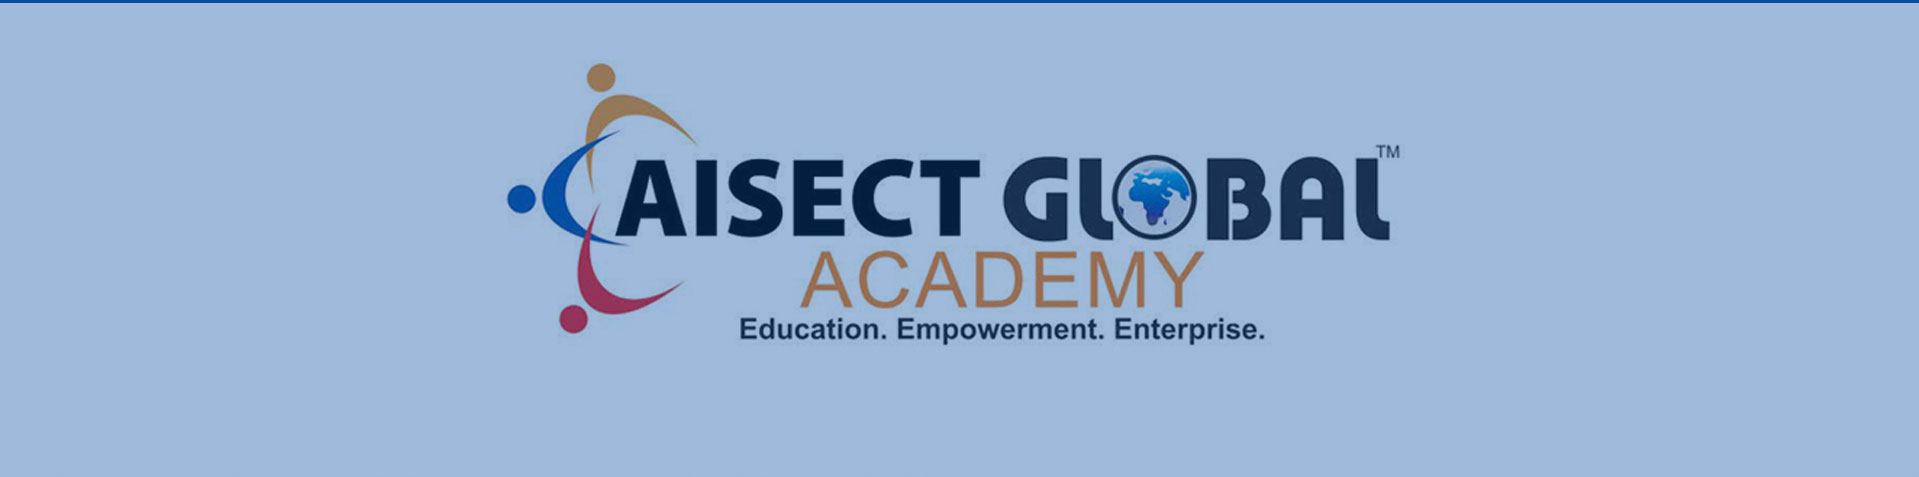 aisect global academy